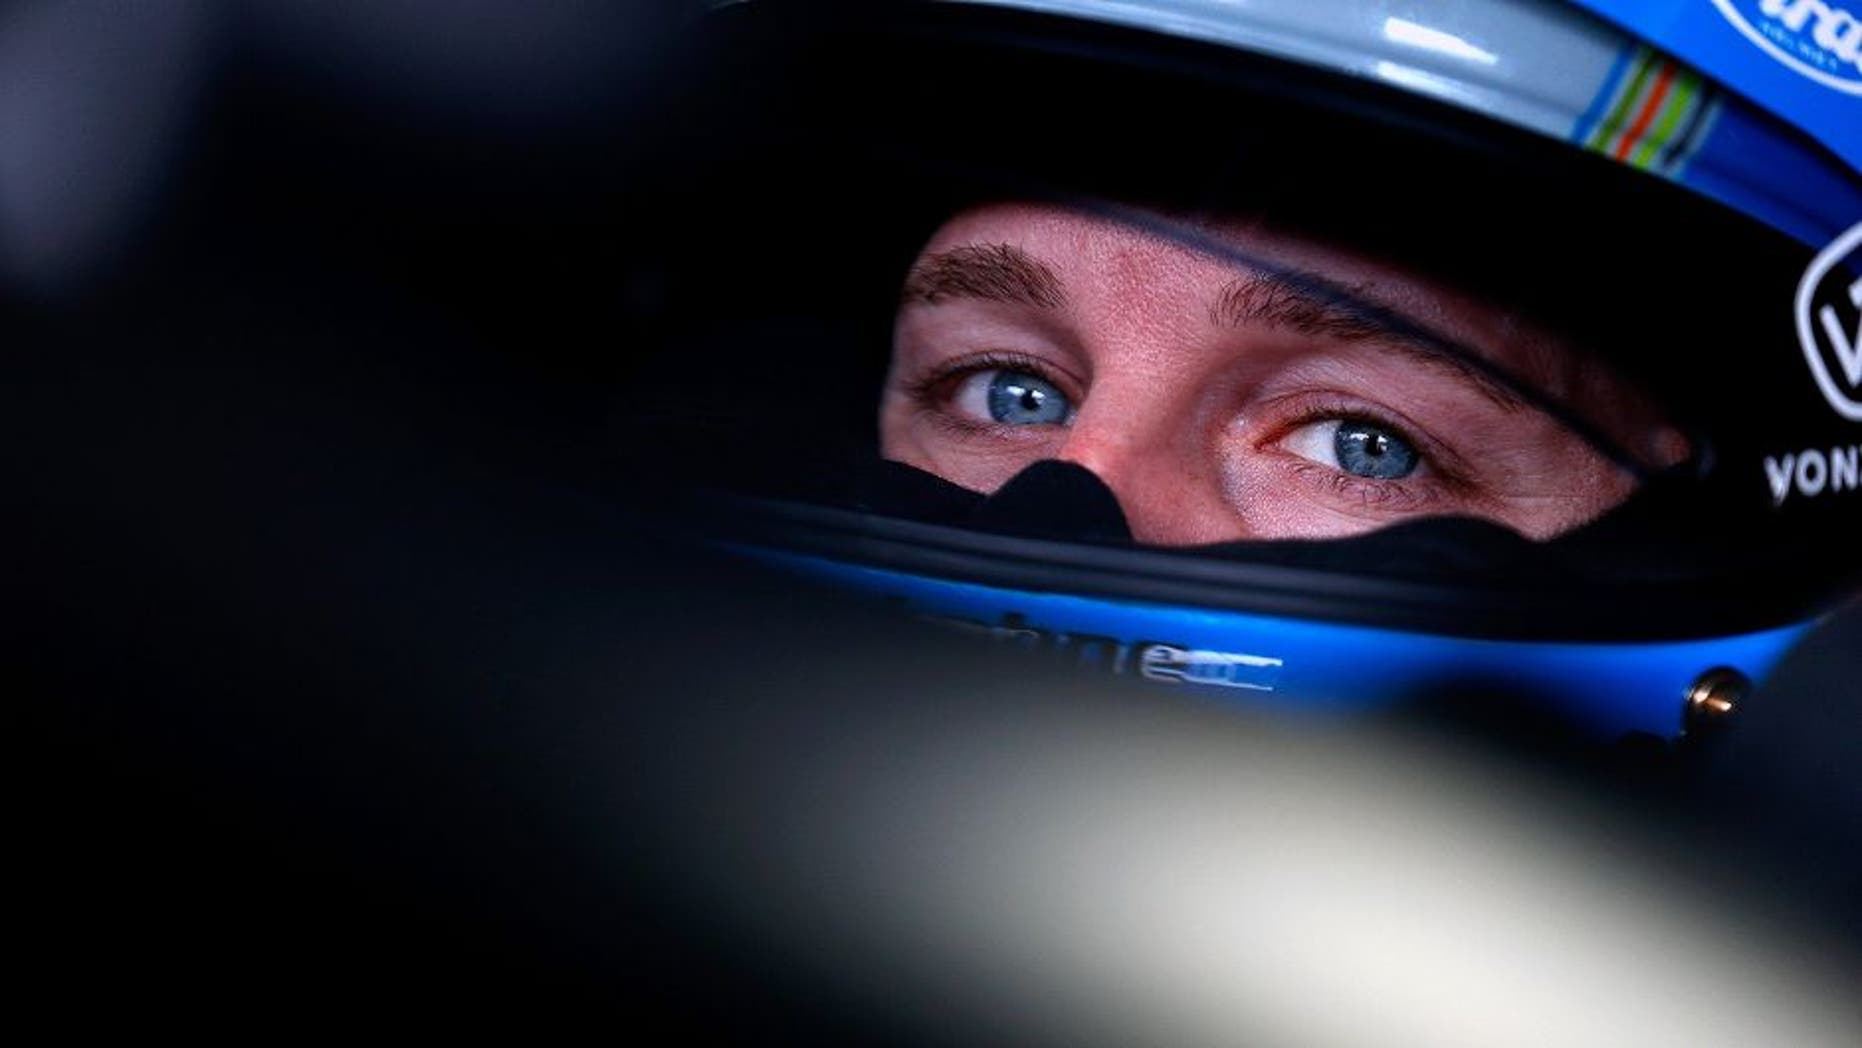 LOUDON, NH - SEPTEMBER 25: Kasey Kahne, driver of the #5 Farmers Insurance Chevrolet, sits in his car during practice for the NASCAR Sprint Cup Series Sylvania 300 at New Hampshire Motor Speedway on September 25, 2015 in Loudon, New Hampshire. (Photo by Brian Lawdermilk/NASCAR via Getty Images)